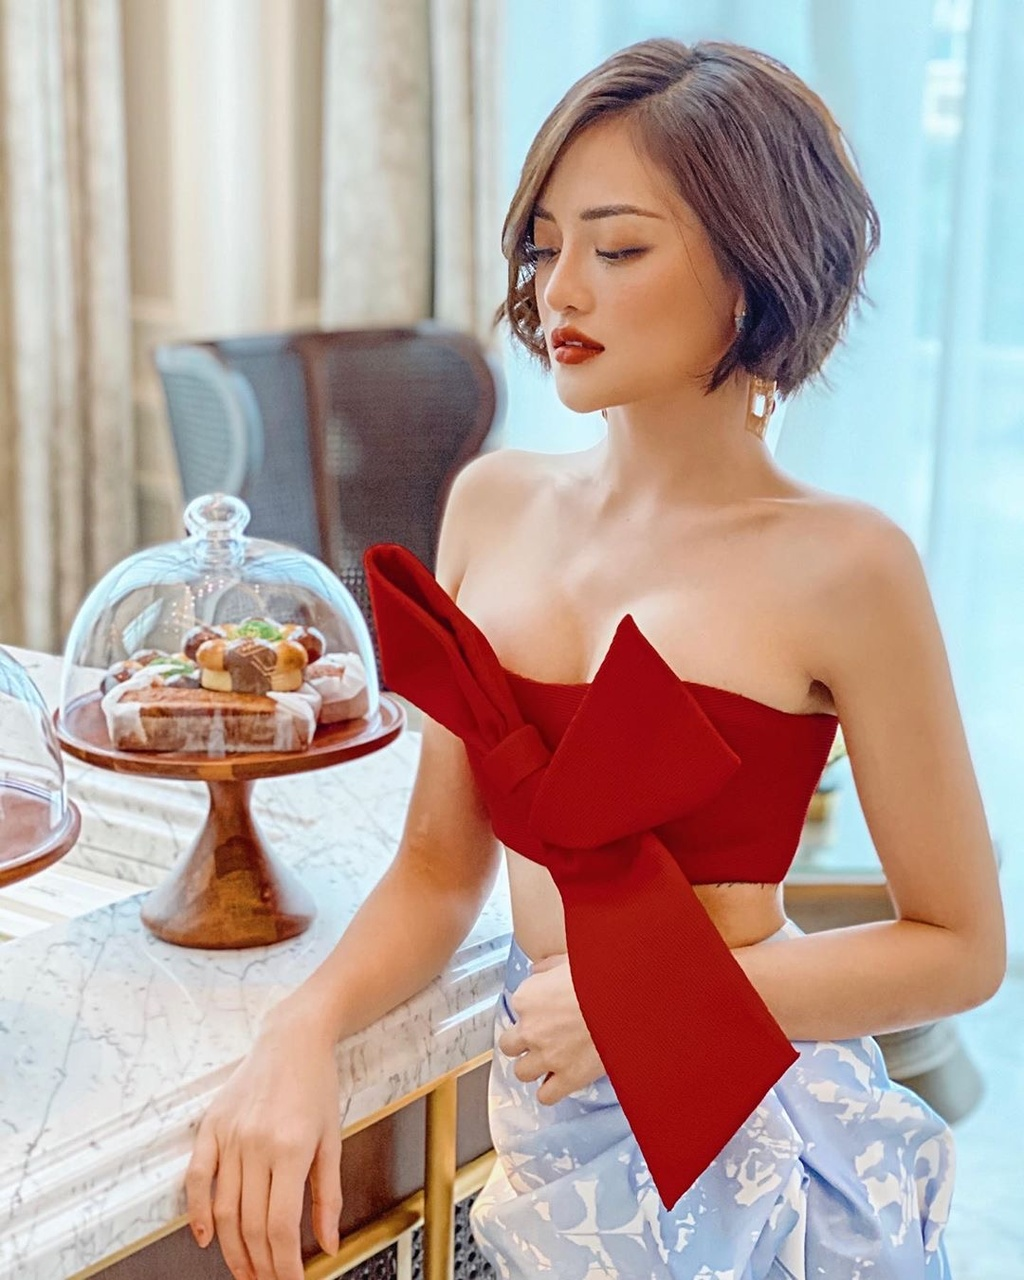 Thuy Anh goi cam o tuoi 25 anh 8